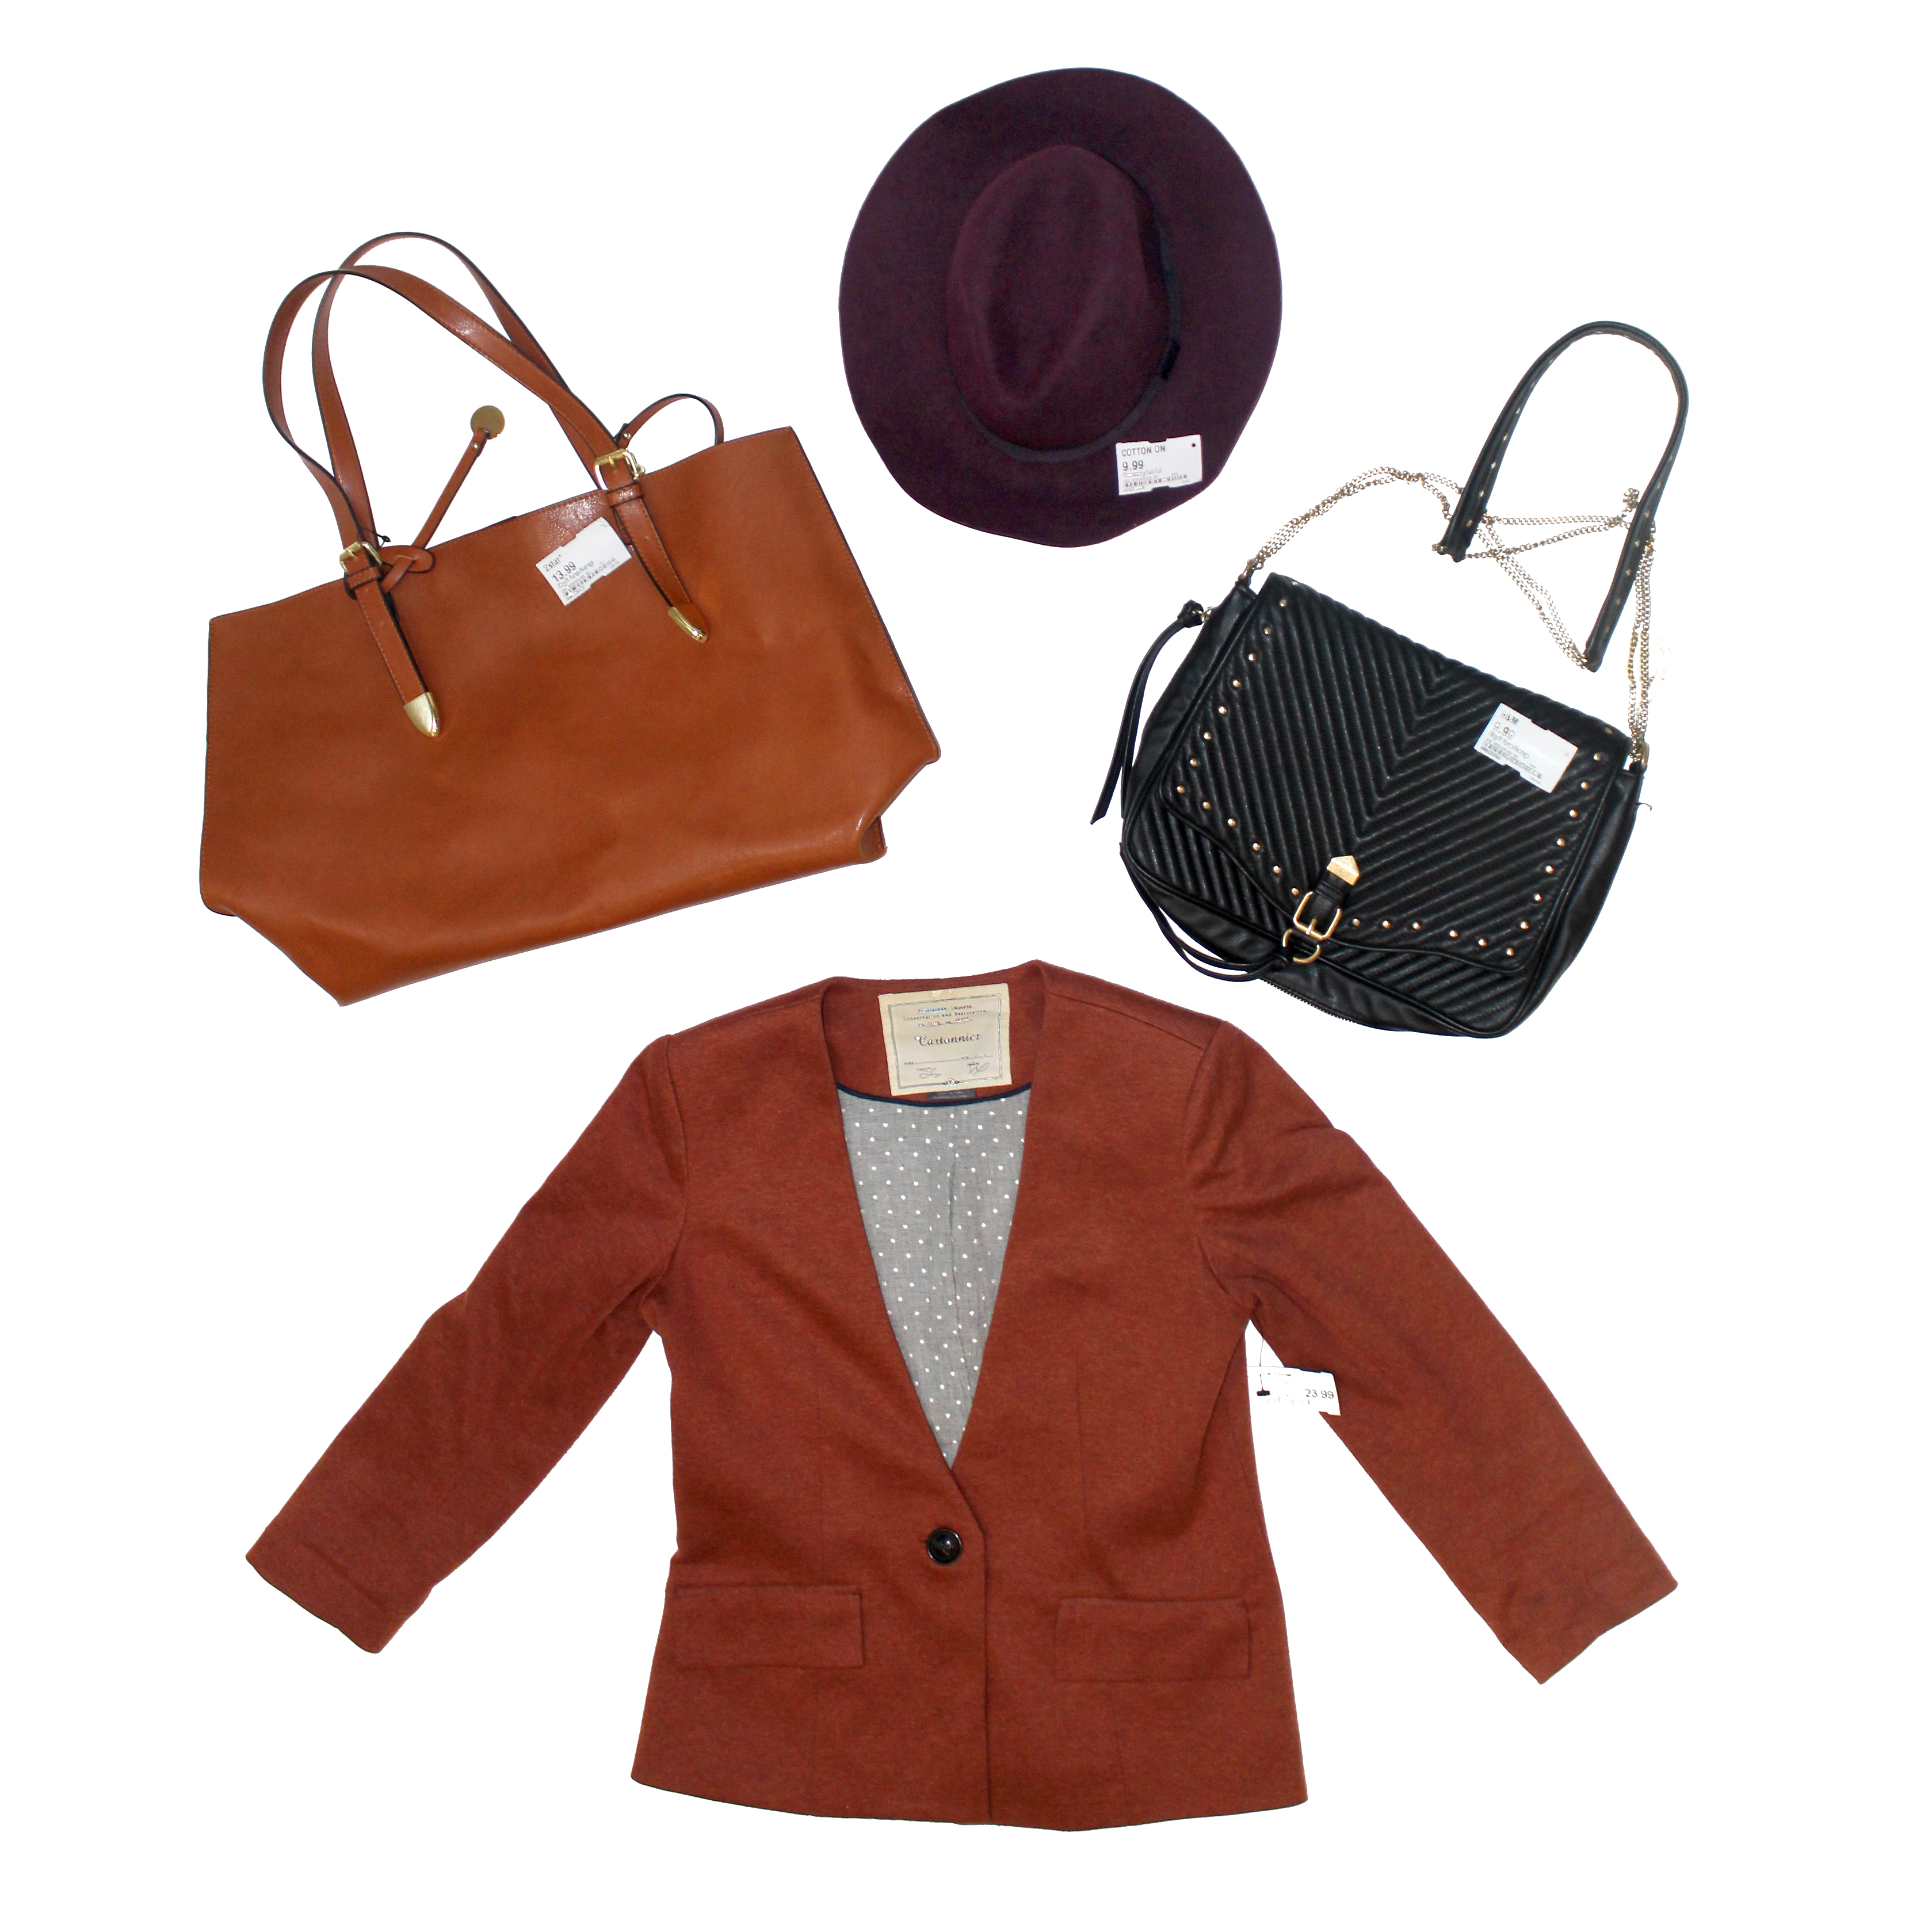 I love uptown cheapskate! i was able to fin these awesome items for an amazing deal!! blazer, black purse, camel tote, and a hat! great prices, affordable fashion. Visit Sugarcoatedhousewife.com